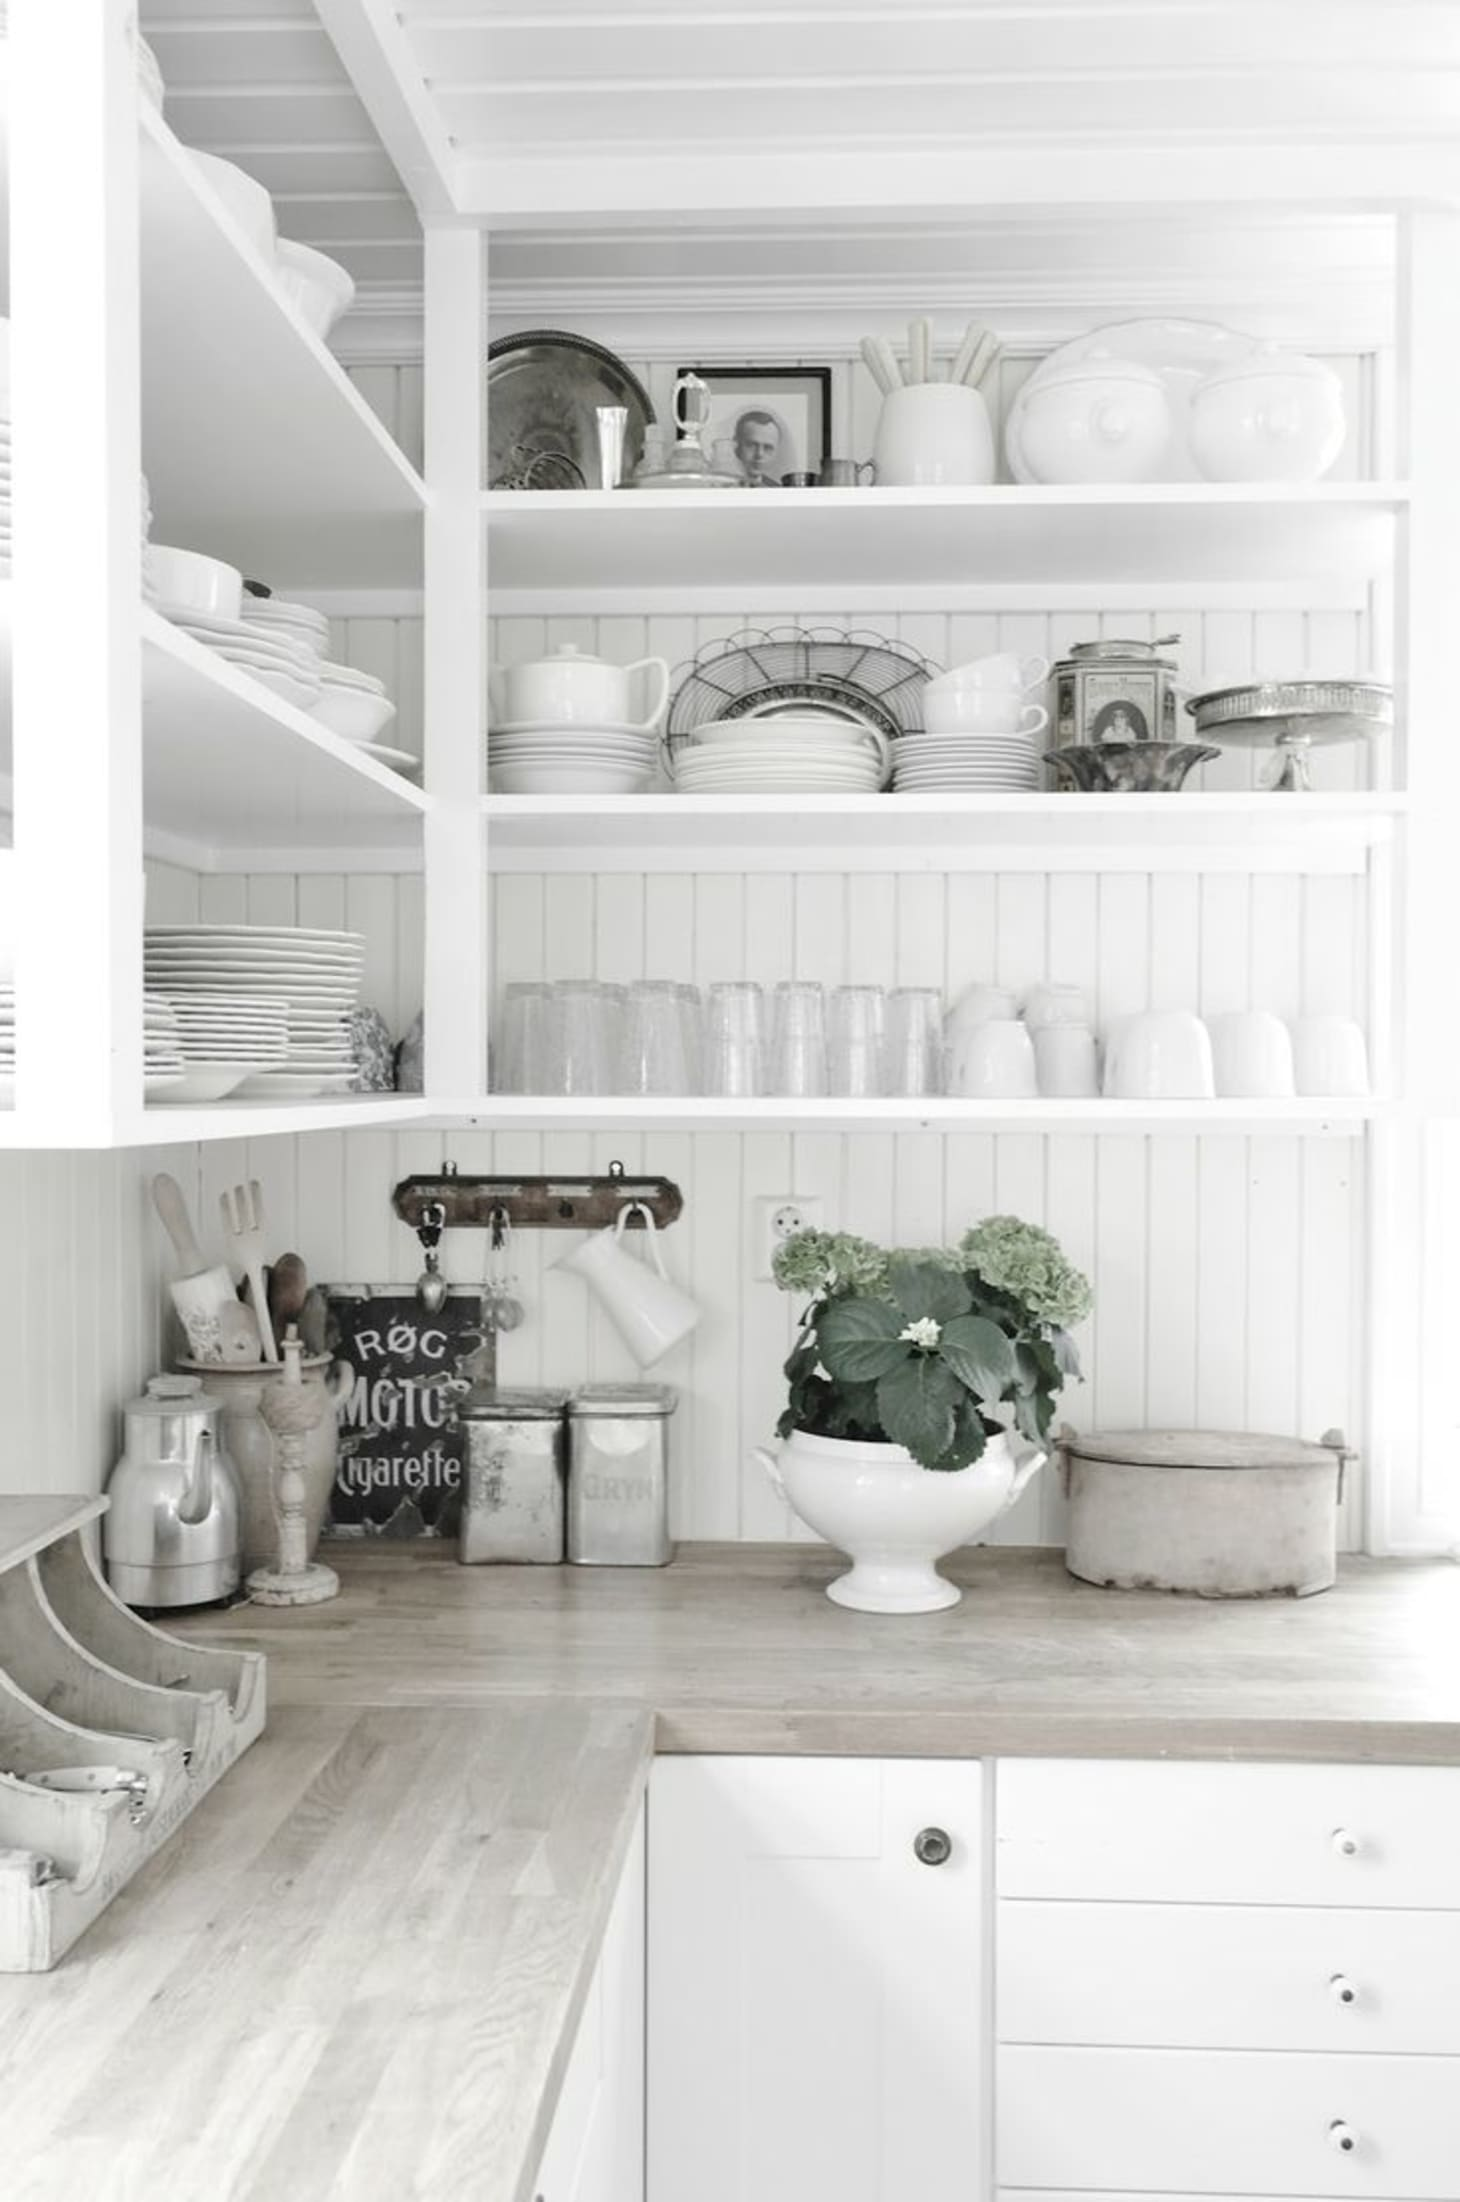 Inexpensive & Timeless Kitchen Backsplash Ideas | Apartment ... on small country kitchens on a budget, kitchen storage ideas on a budget, christmas decorating ideas on a budget, kitchen design, kitchen renovations on a budget, kitchen ideas pot storage, french country kitchen on a budget, kitchen upgrades on a budget, kitchen facelift on a budget, interior design ideas on a budget, small outdoor kitchens on a budget, kitchen color ideas with dark floors, kitchen remodeling on a budget, kitchen updates on a budget before and after, kitchen islands on a budget, kitchen remodeling ideas for small kitchens, kitchen tile, kitchen update ideas on a budget, fireplace ideas on a budget, kitchen with paint refresh,